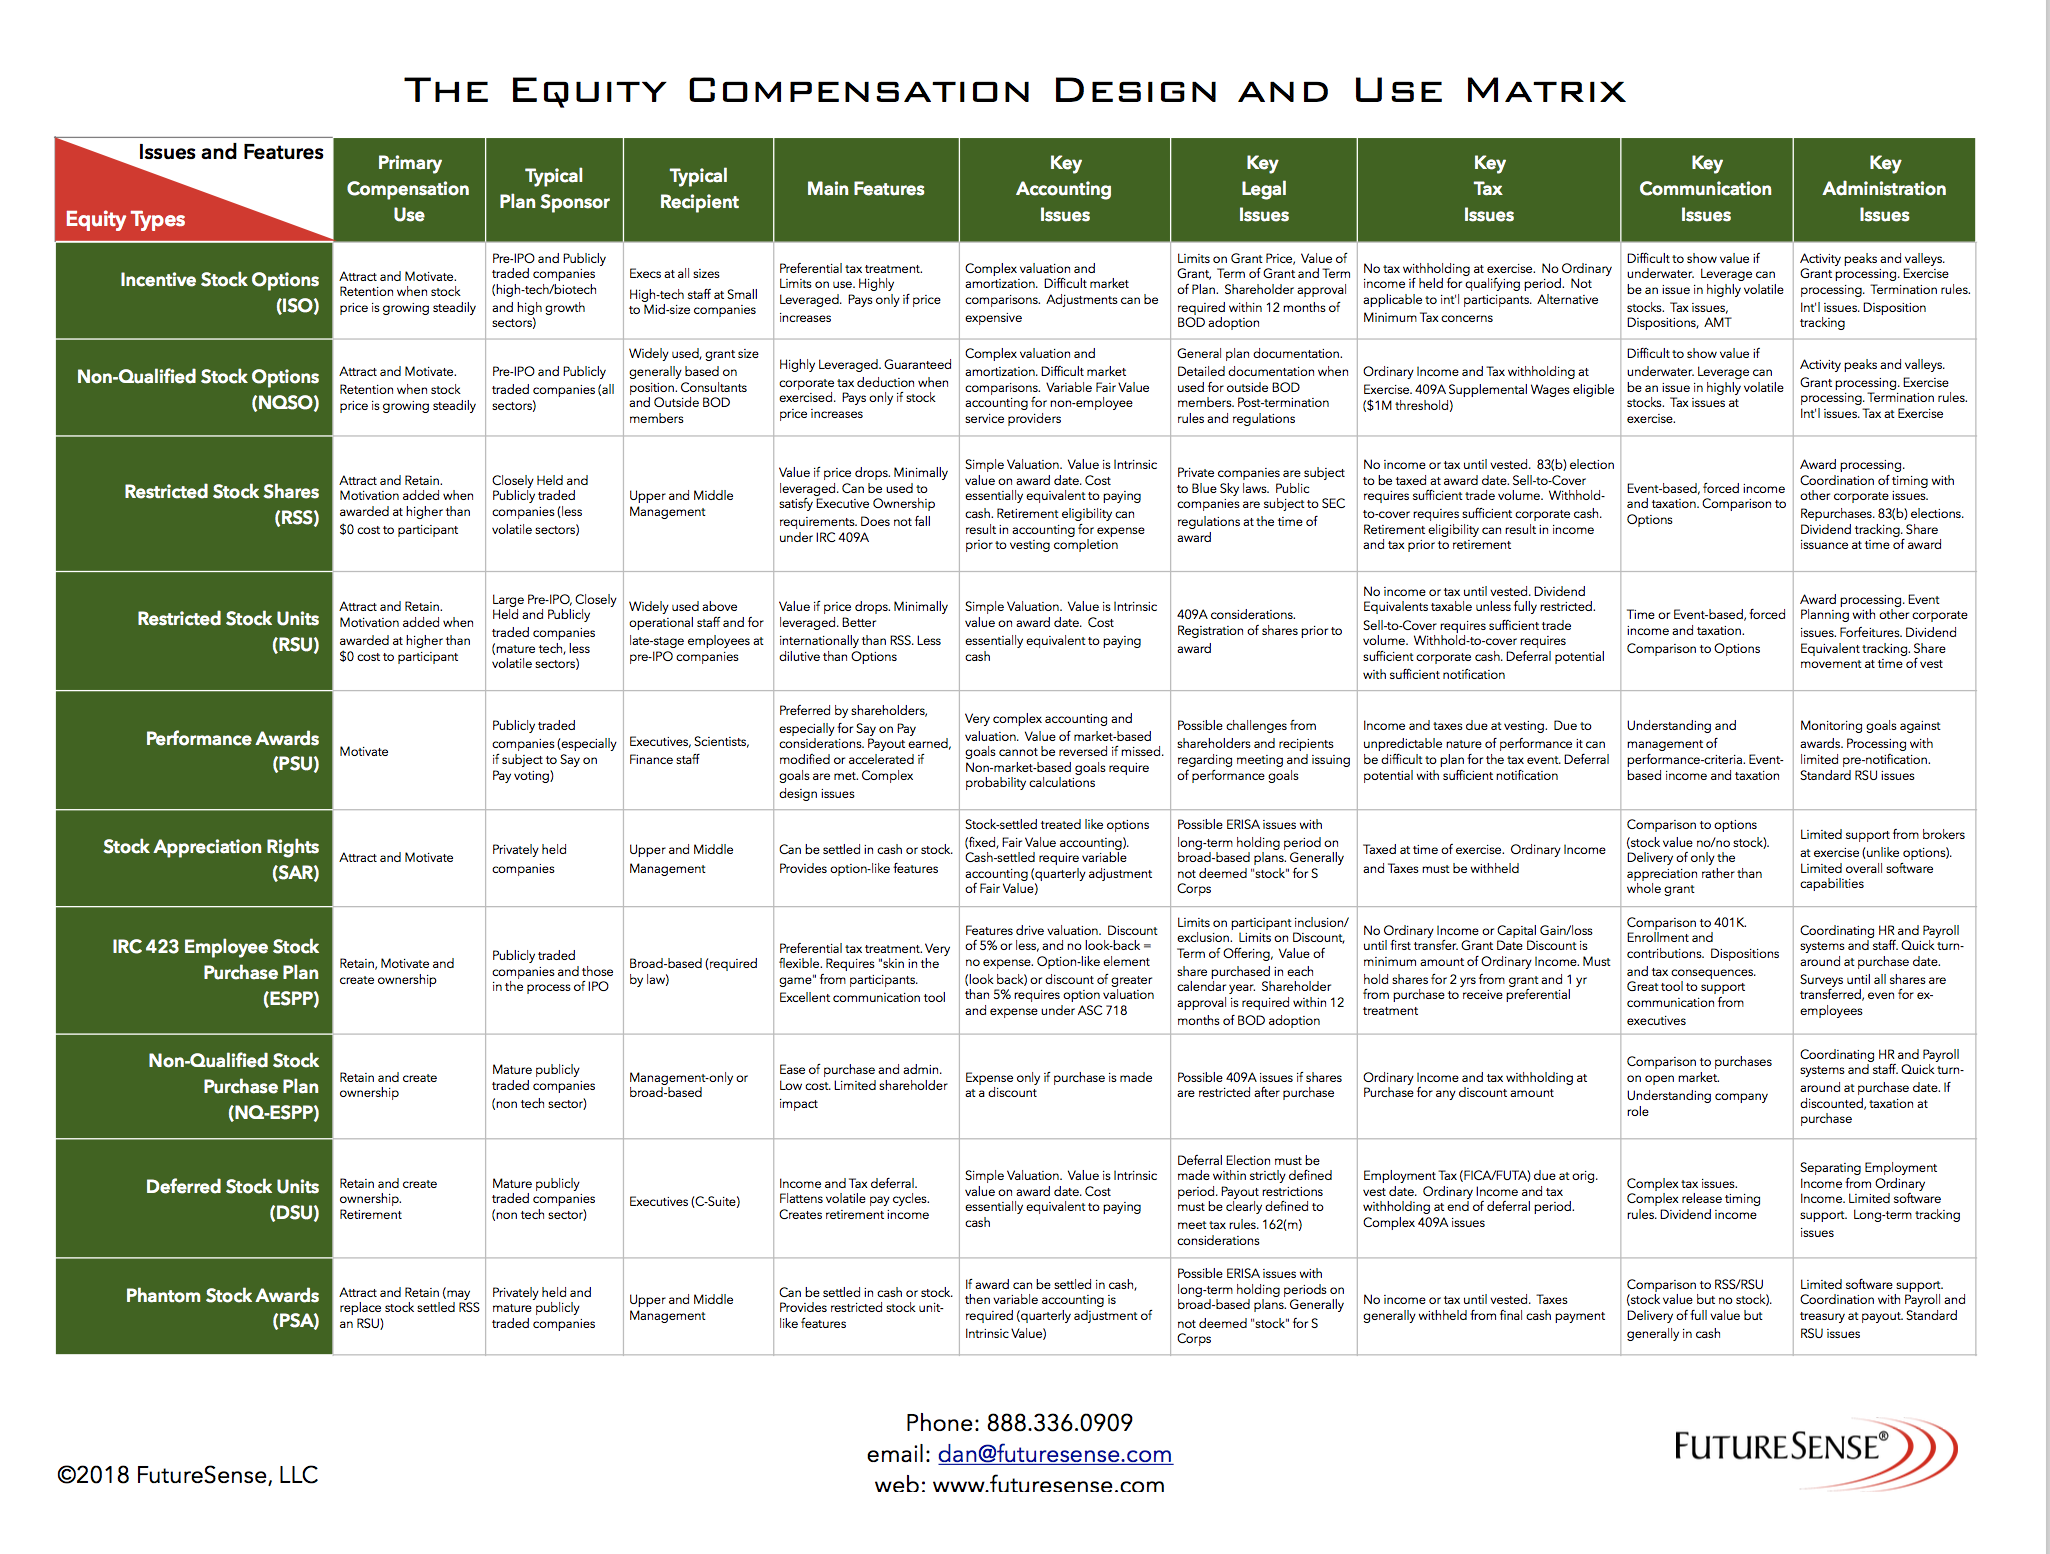 equity compensation design and use matrix-image.png